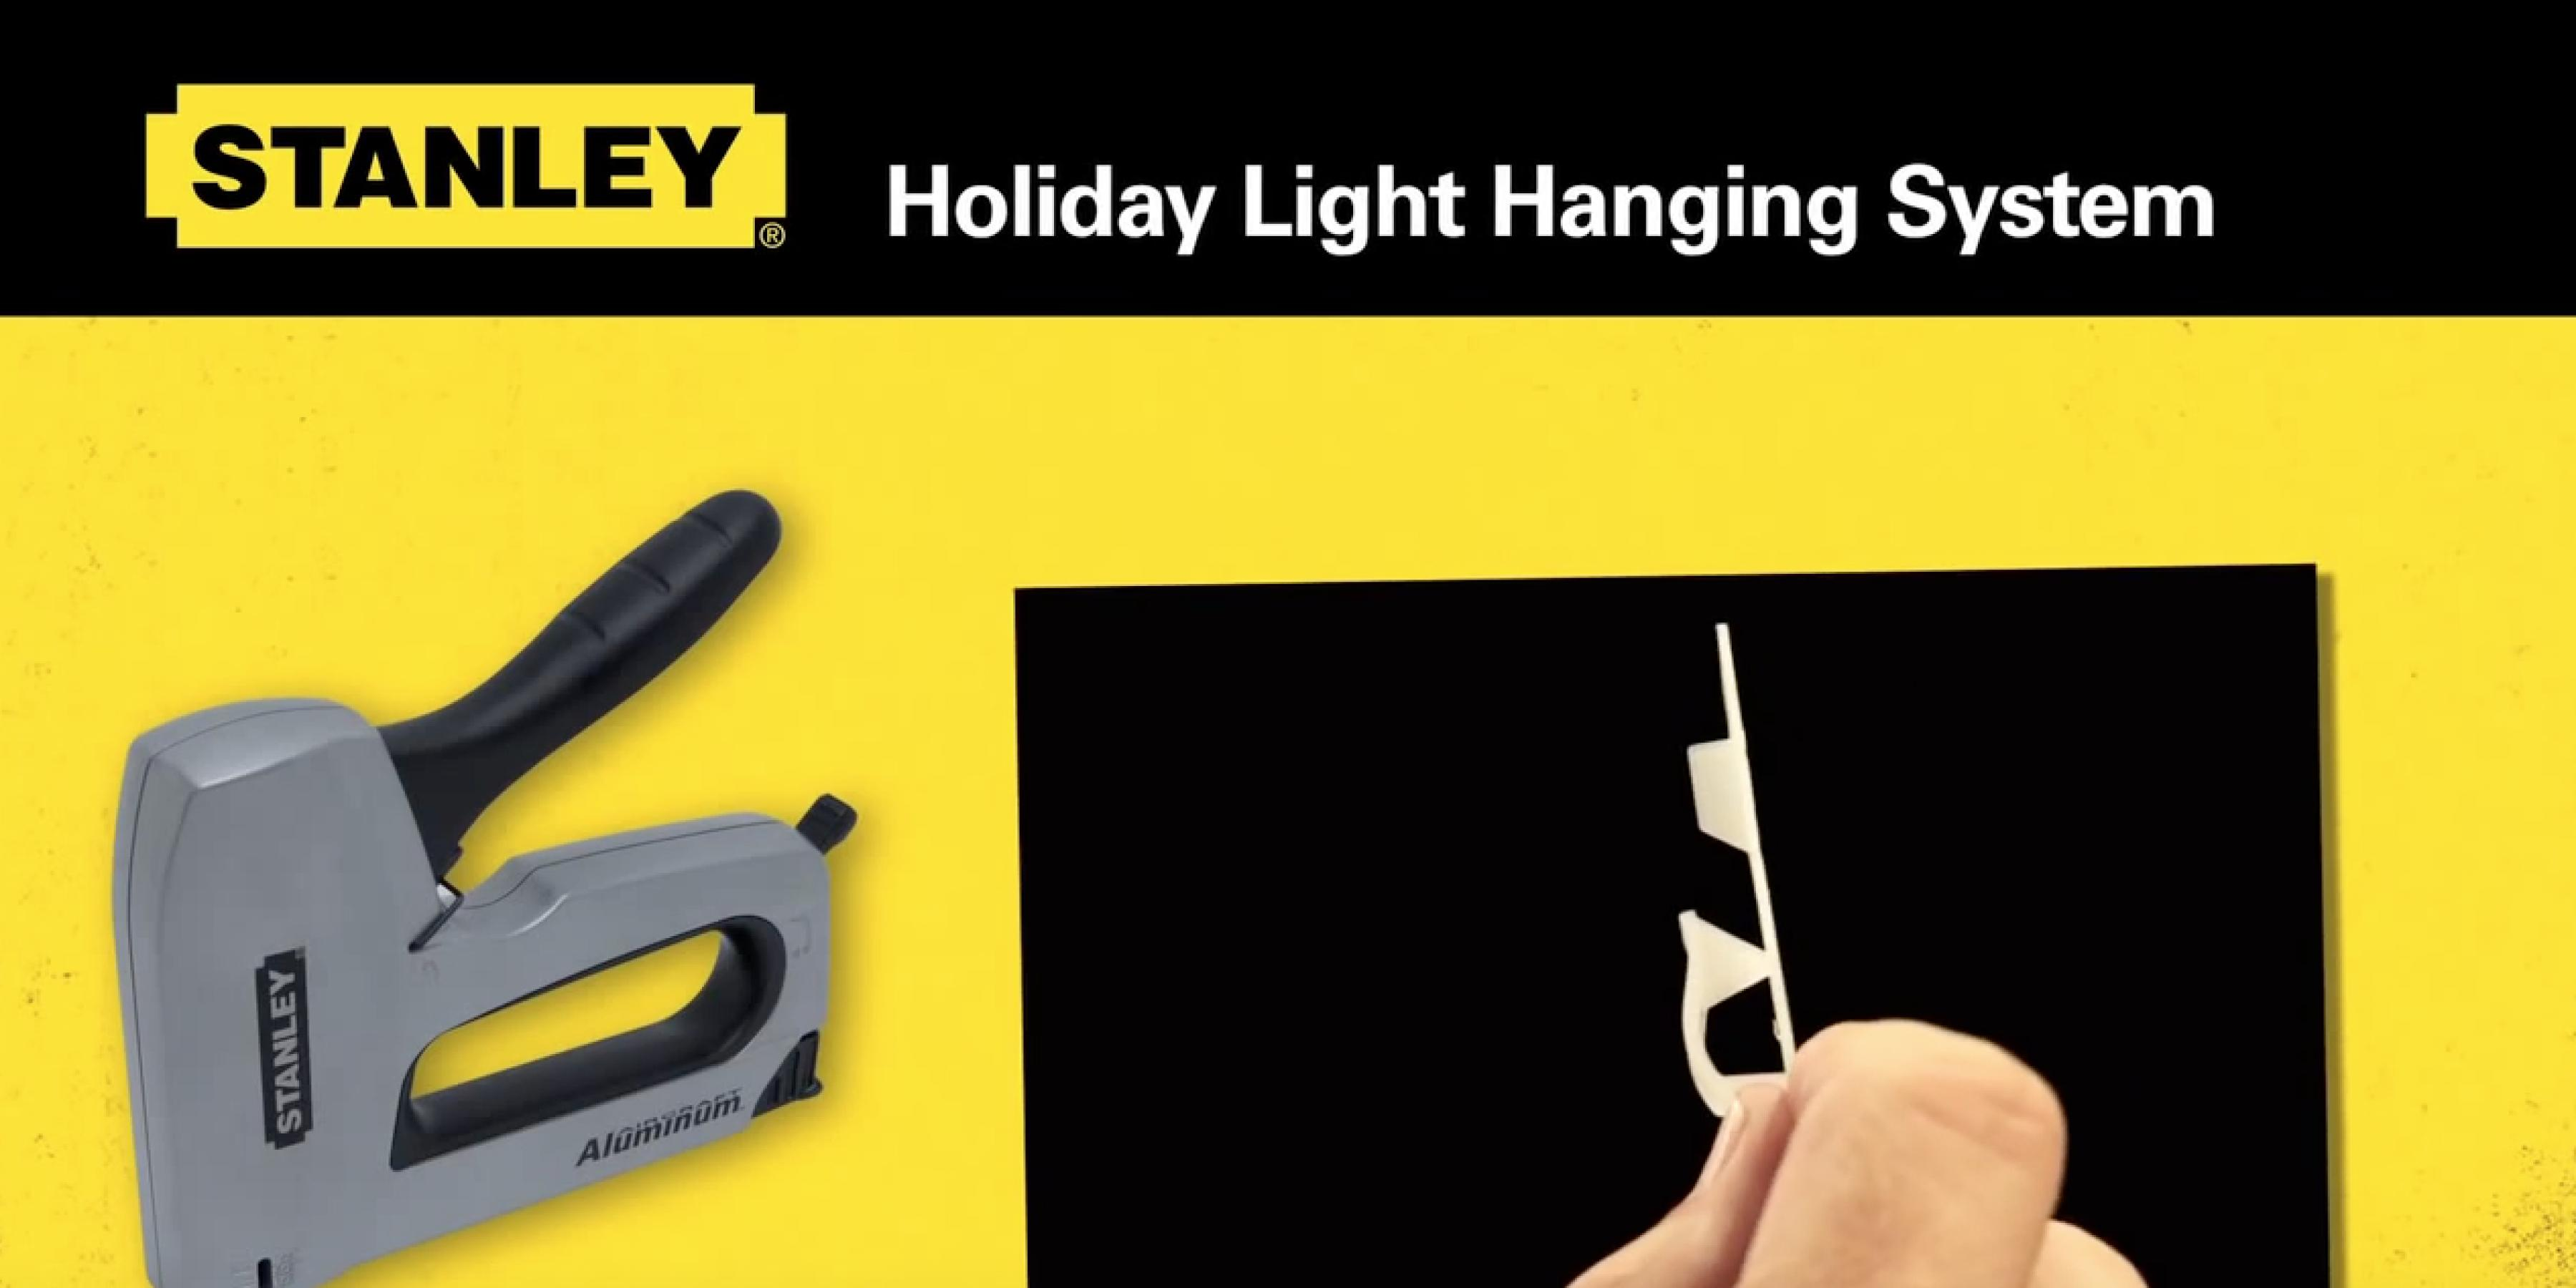 Stanley Holiday Light Hanging System